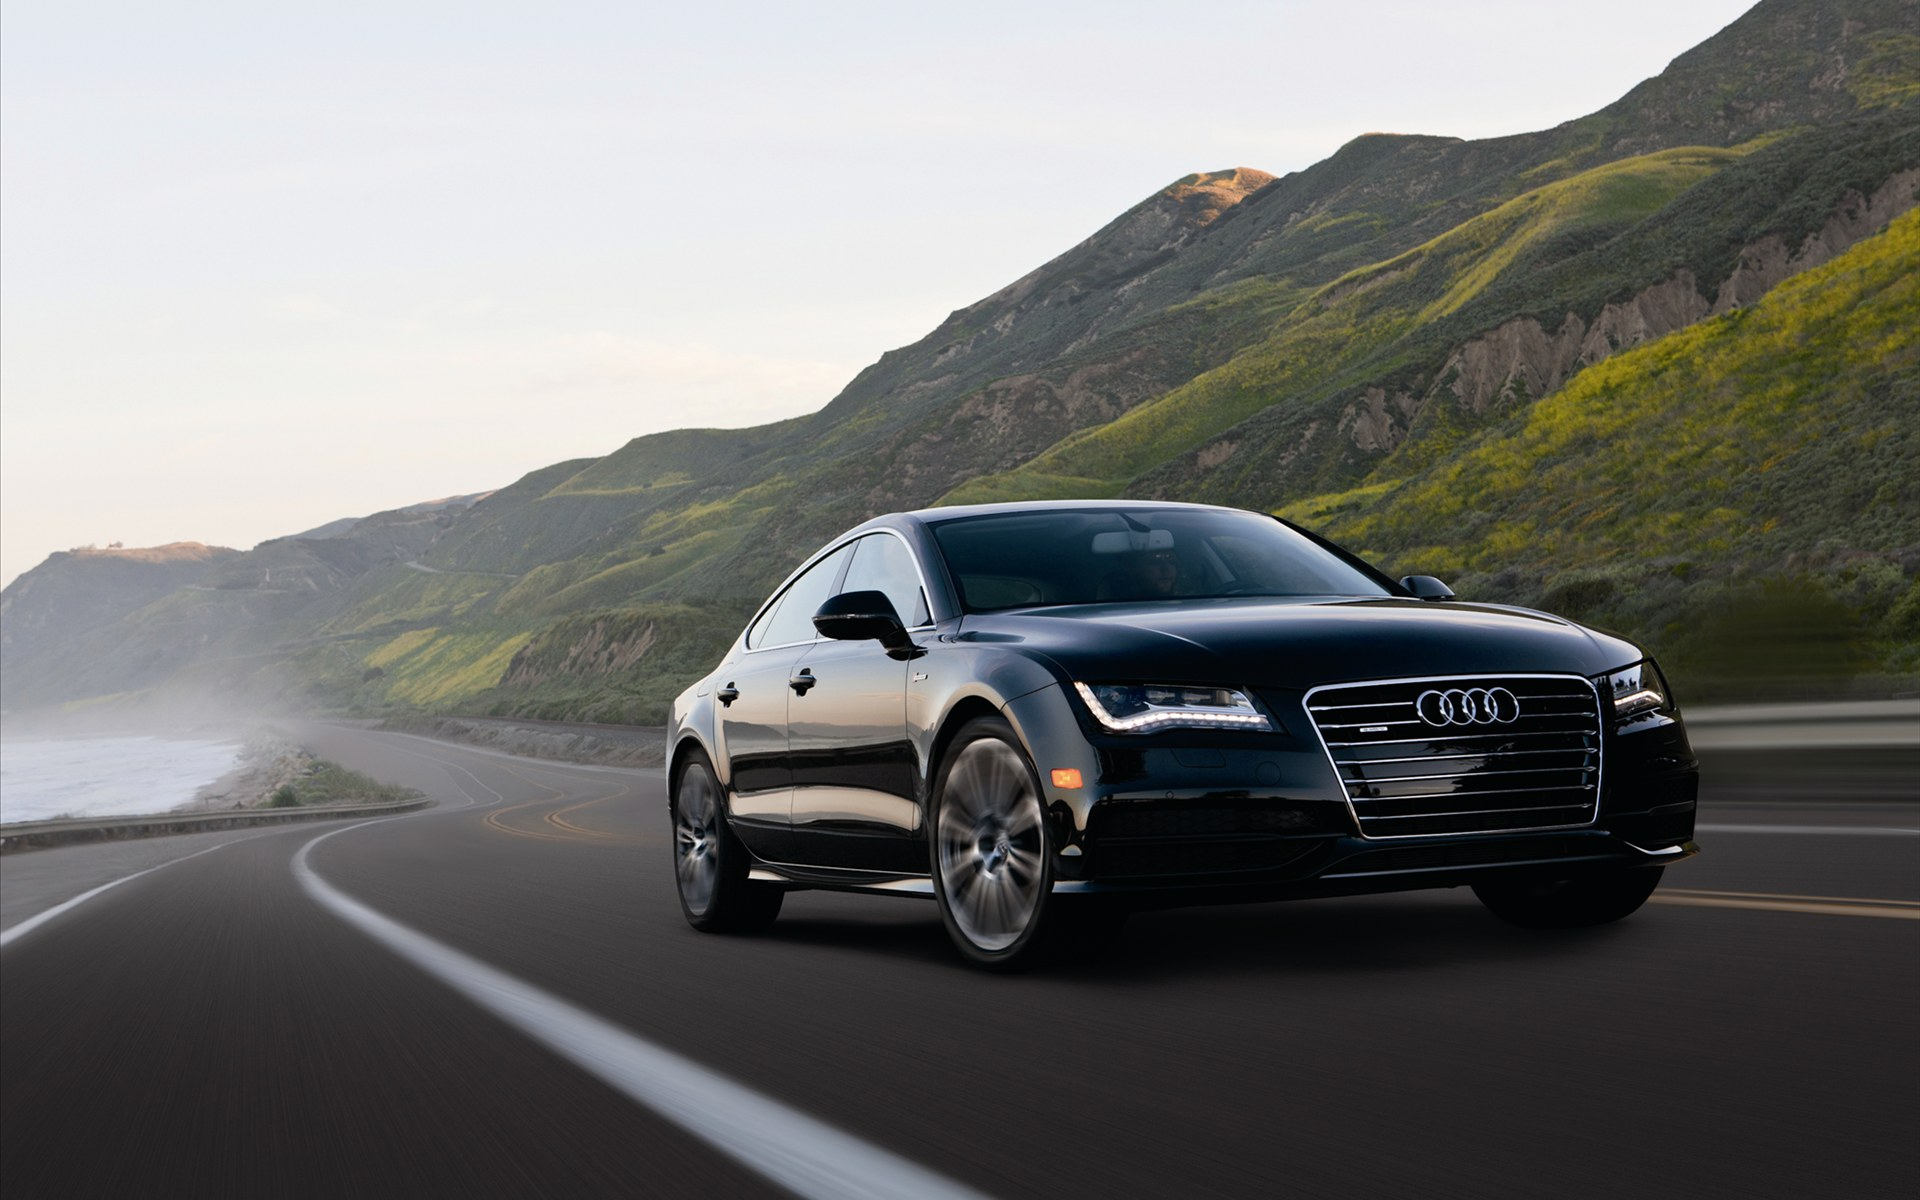 43 Audi WallpapersBackgrounds In HD For Download 1920x1200